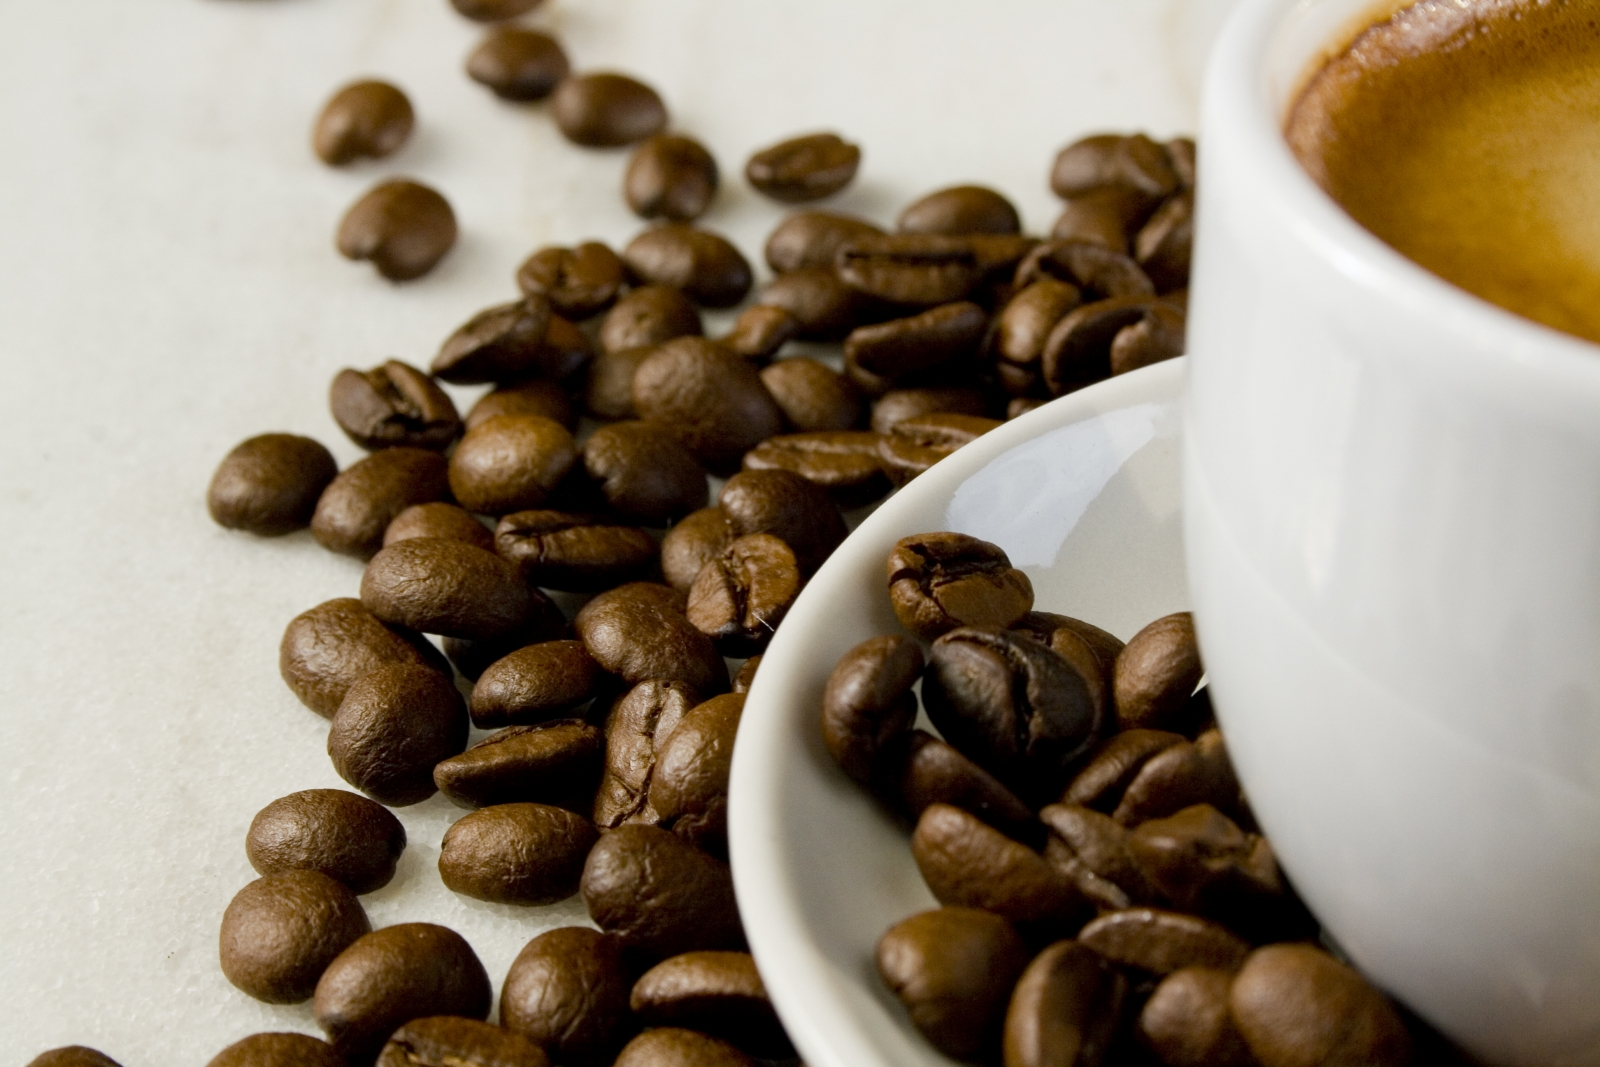 Coffee lovers rejoice! Coffee may help you live longer!